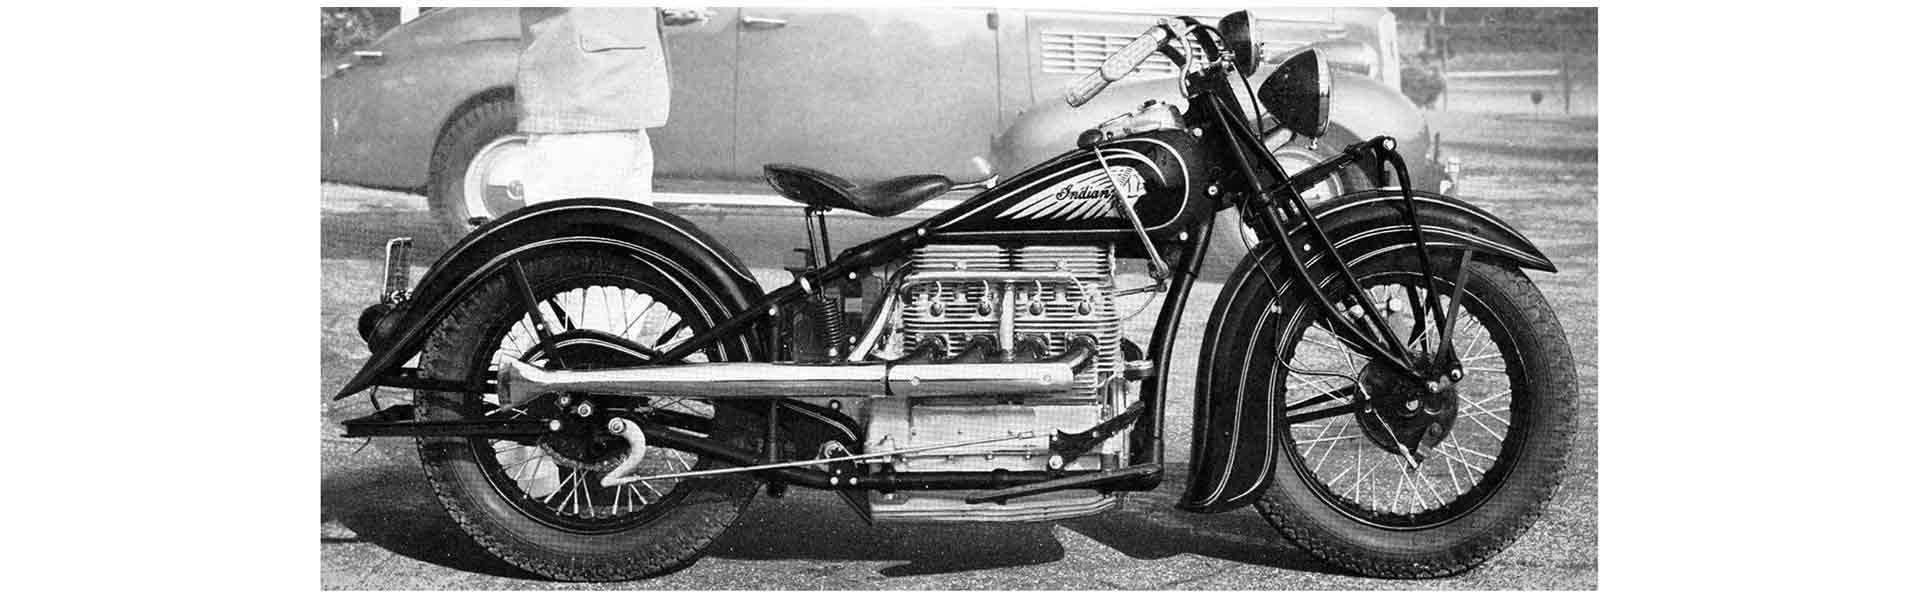 Starklite Indian Motorcycles Motorcycle Parts Service. Indian Chief. Wiring. 1947 Indian Chief Wiring Diagram At Scoala.co